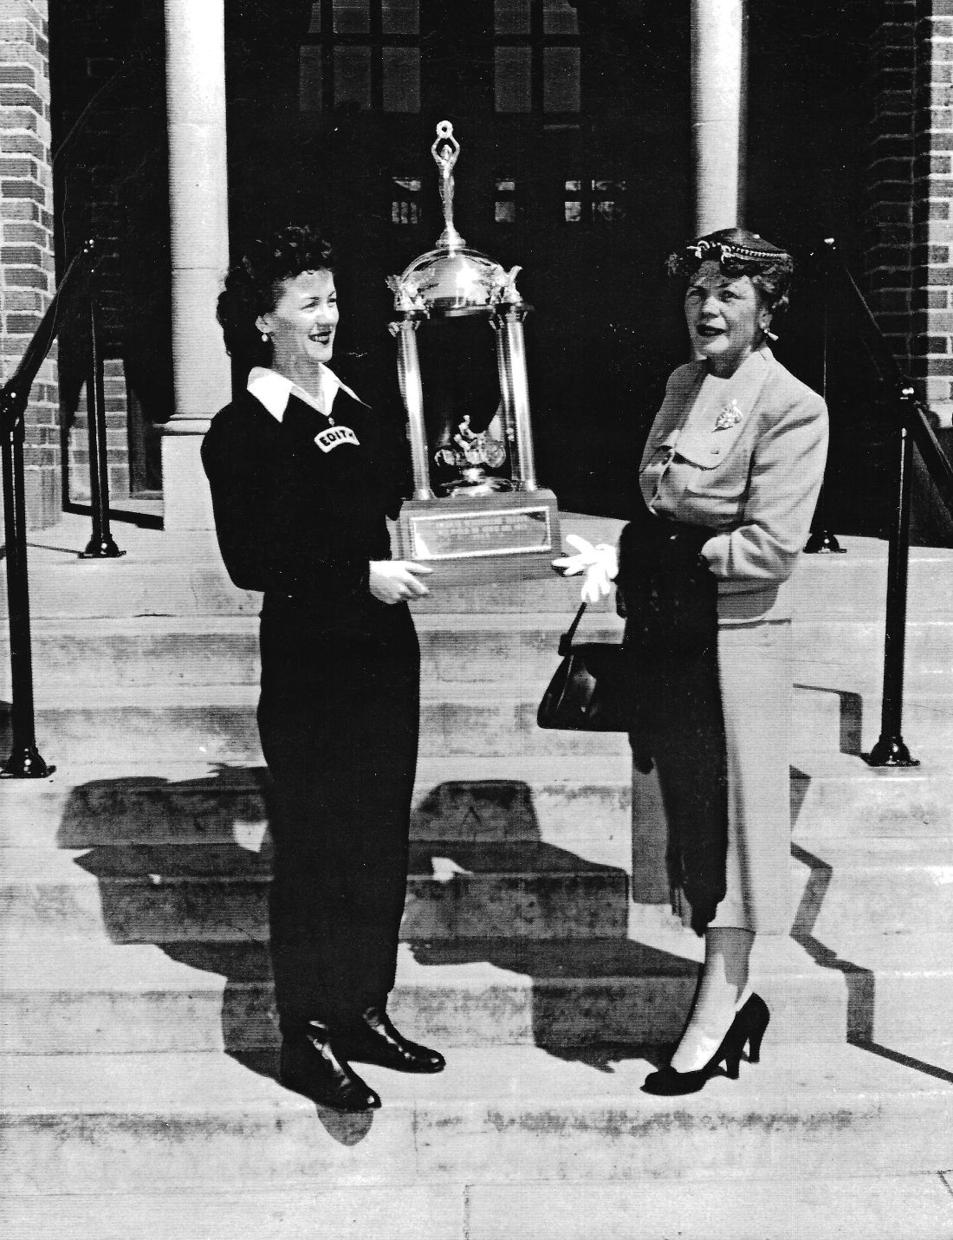 Mabel Richey, Lodi's first woman on the city council